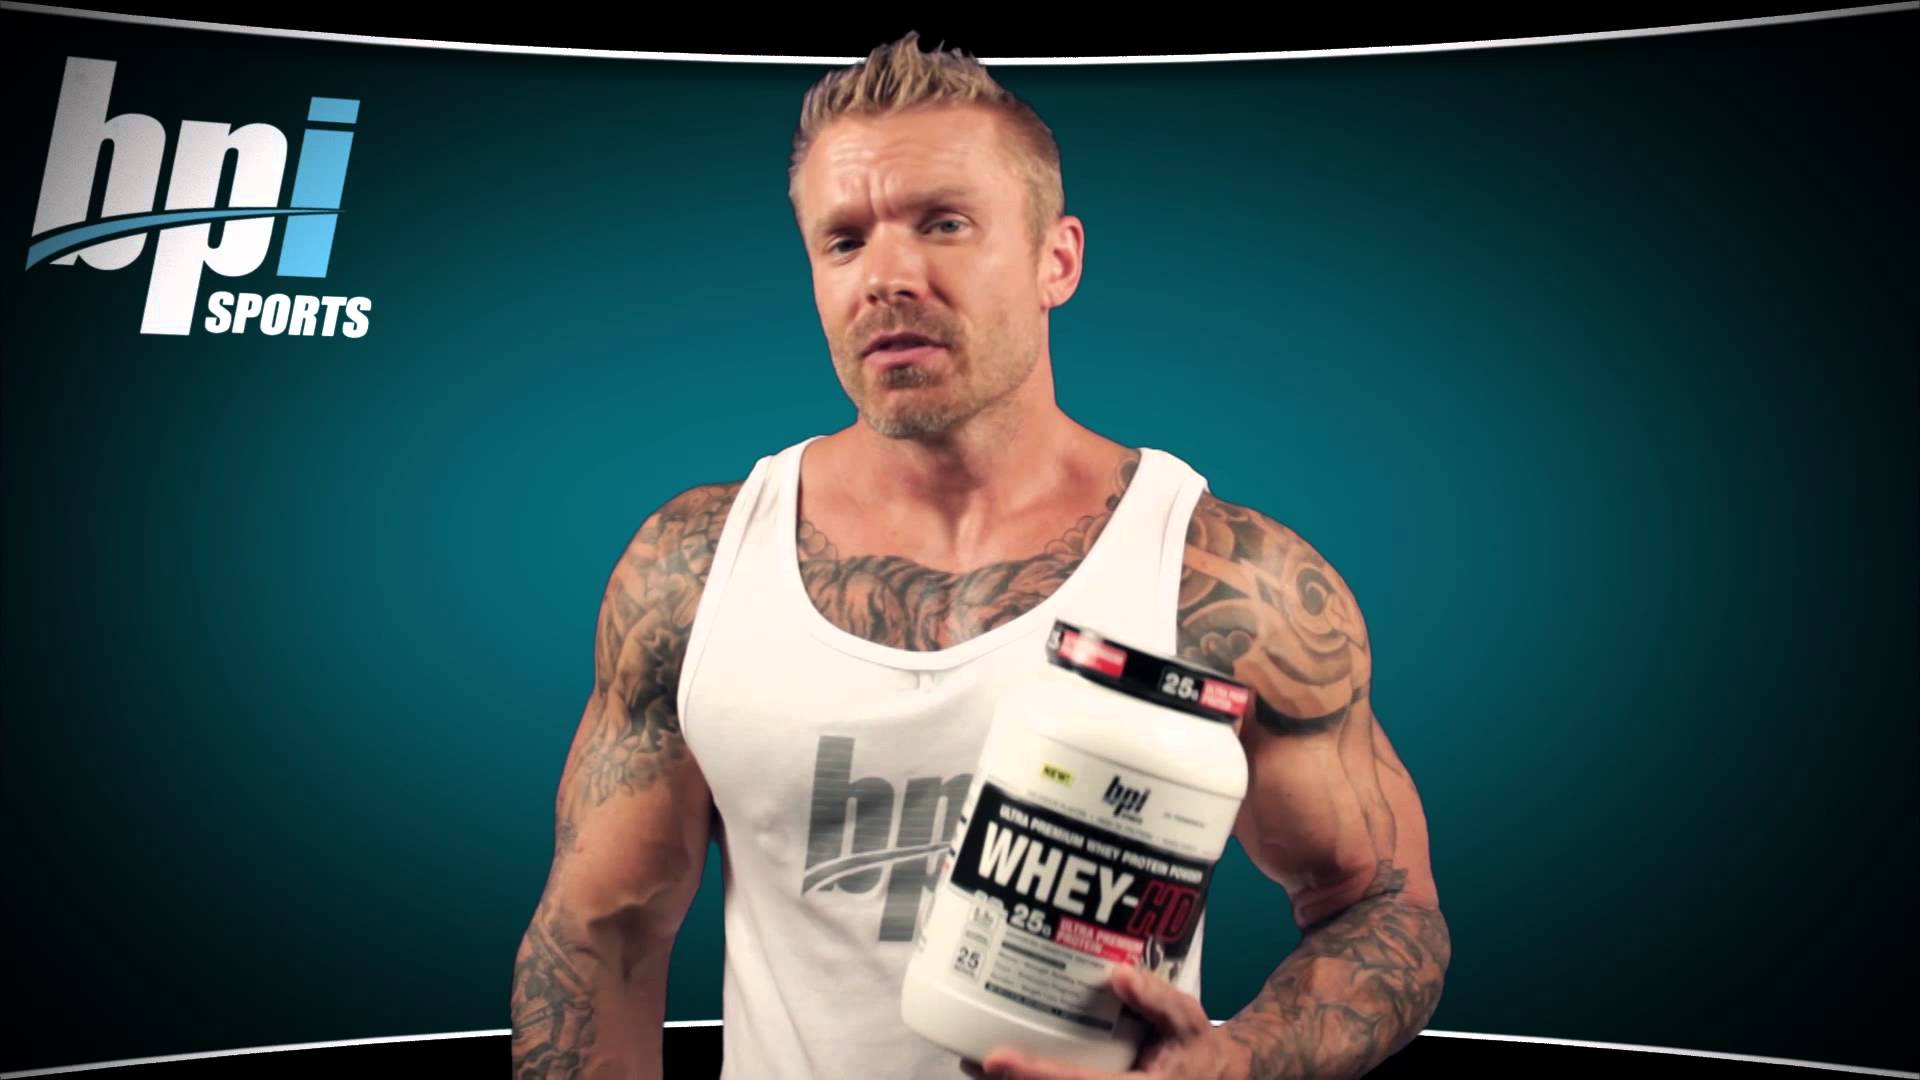 James-Grage-speaking-on-Whey-Protein